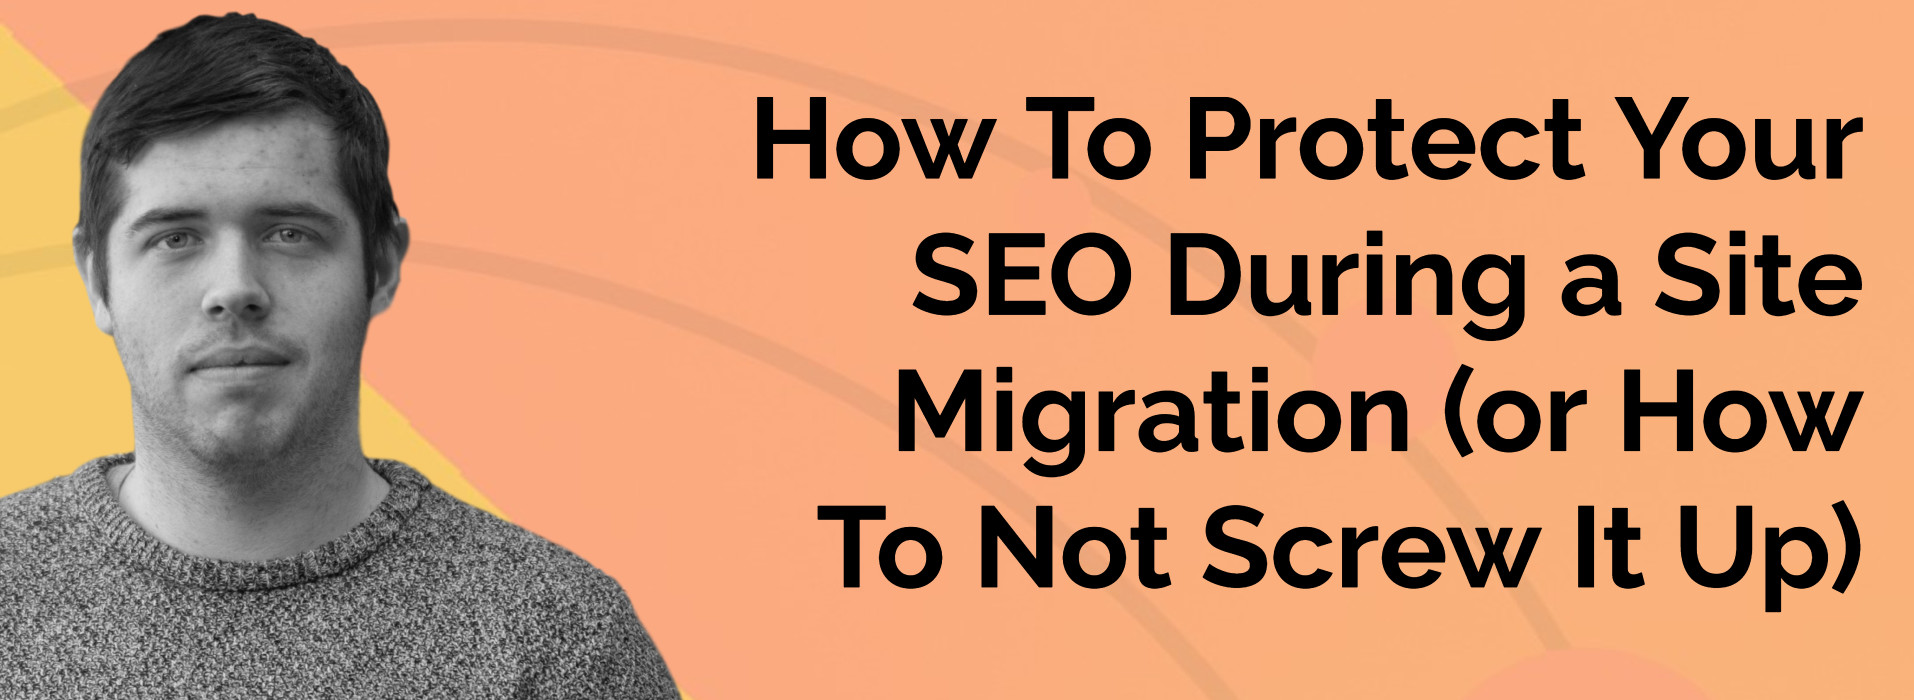 How To Protect Your SEO During a Site Migration - or How To Not Screw It Up